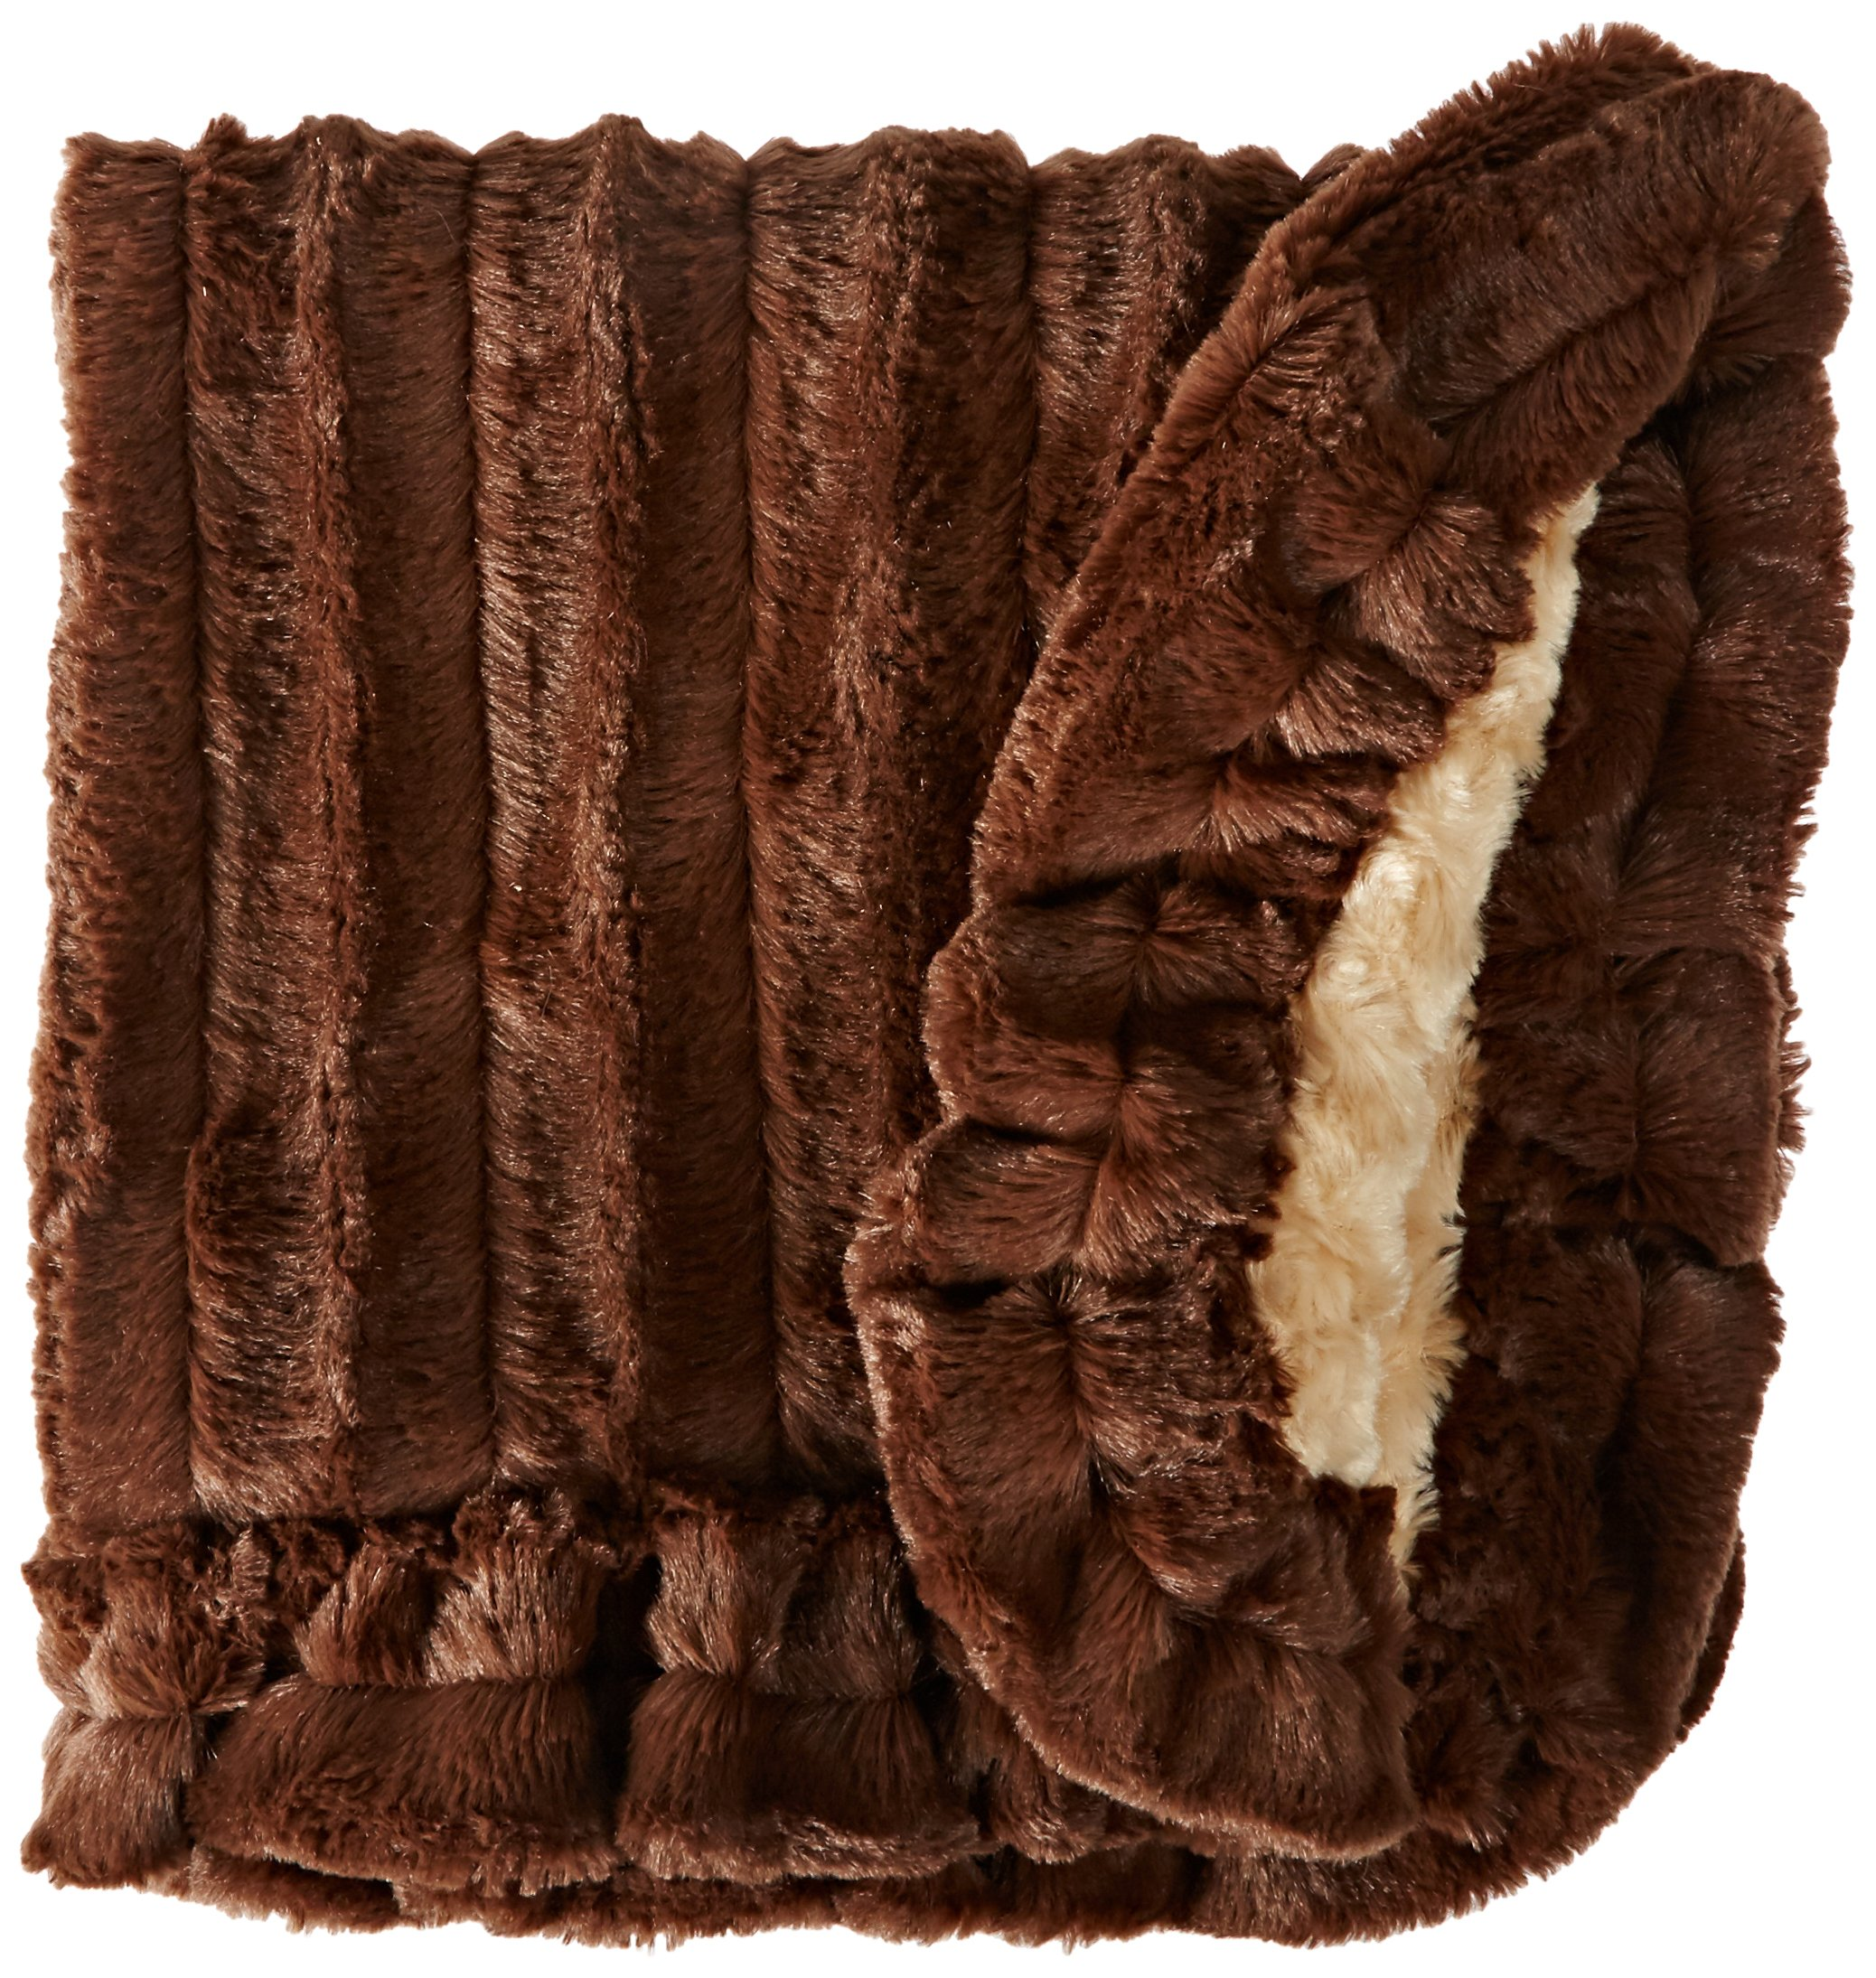 BESSIE AND BARNIE Camel Rose/Godiva Brown Luxury Ultra Plush Faux Fur Pet, Dog, Cat, Puppy Super Soft Reversible Blanket (Multiple Sizes) by BESSIE AND BARNIE (Image #1)